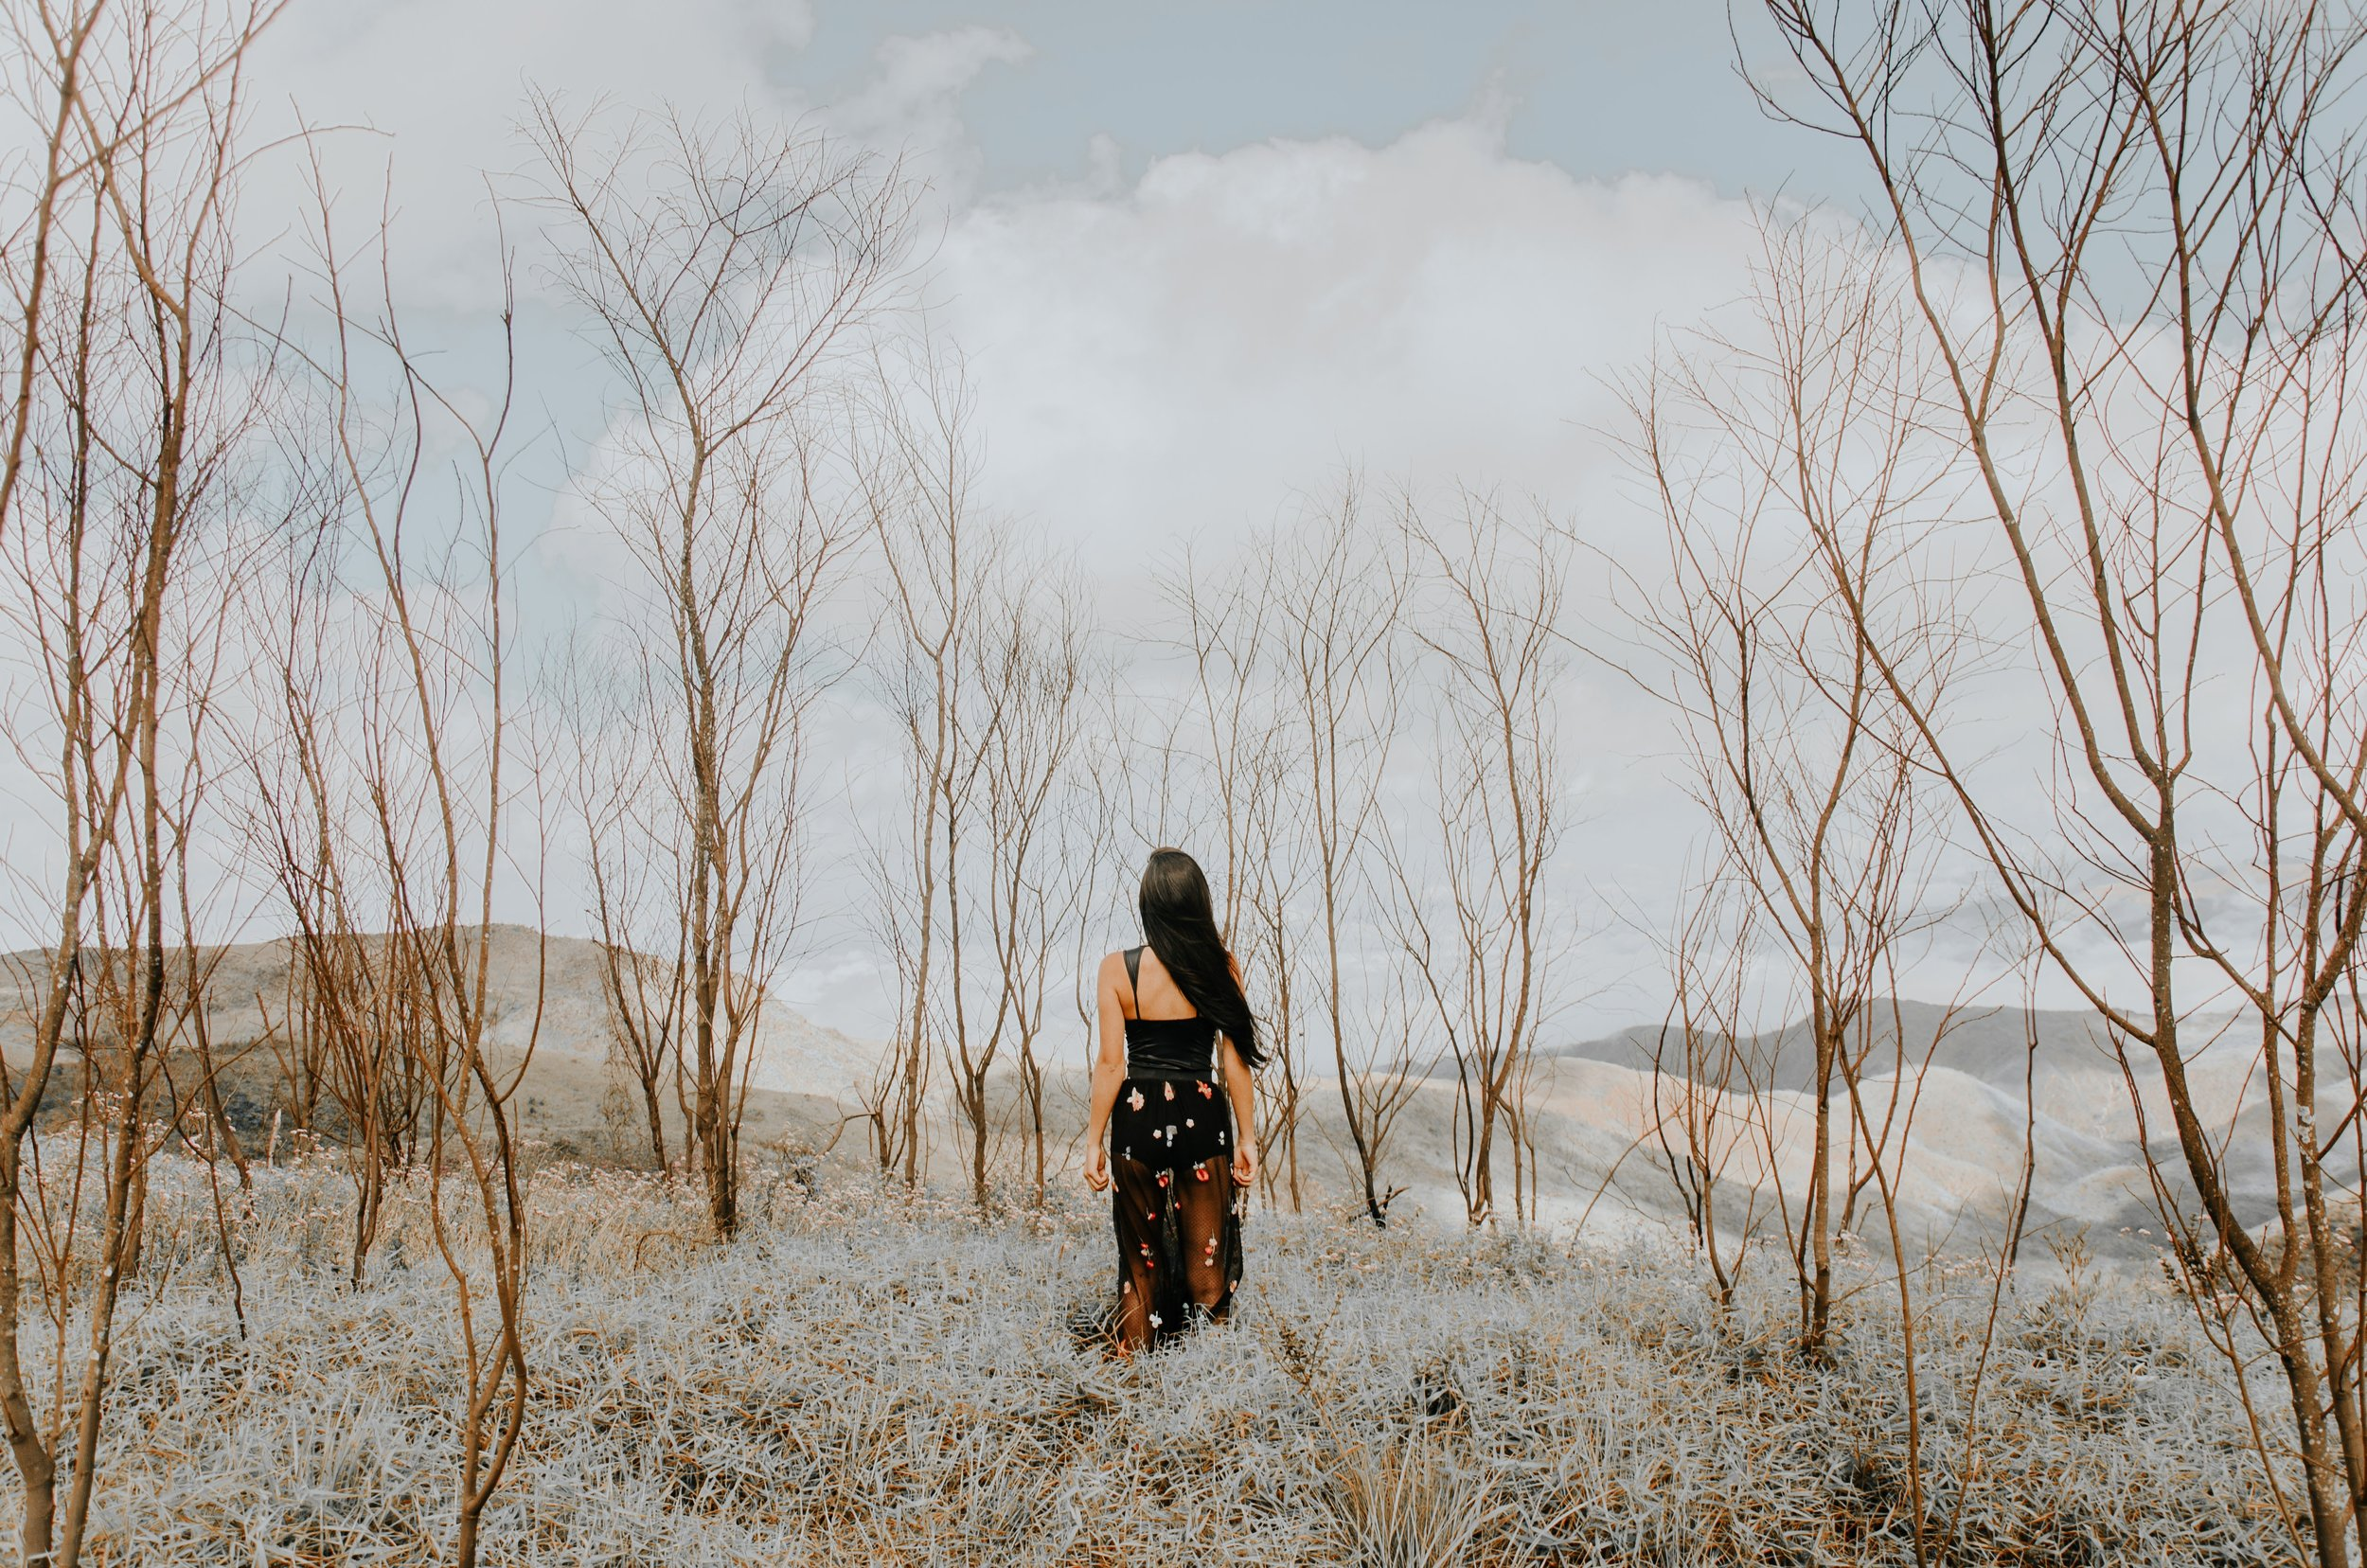 Young woman with long black hair and a black dress walking through a scrubby desert.